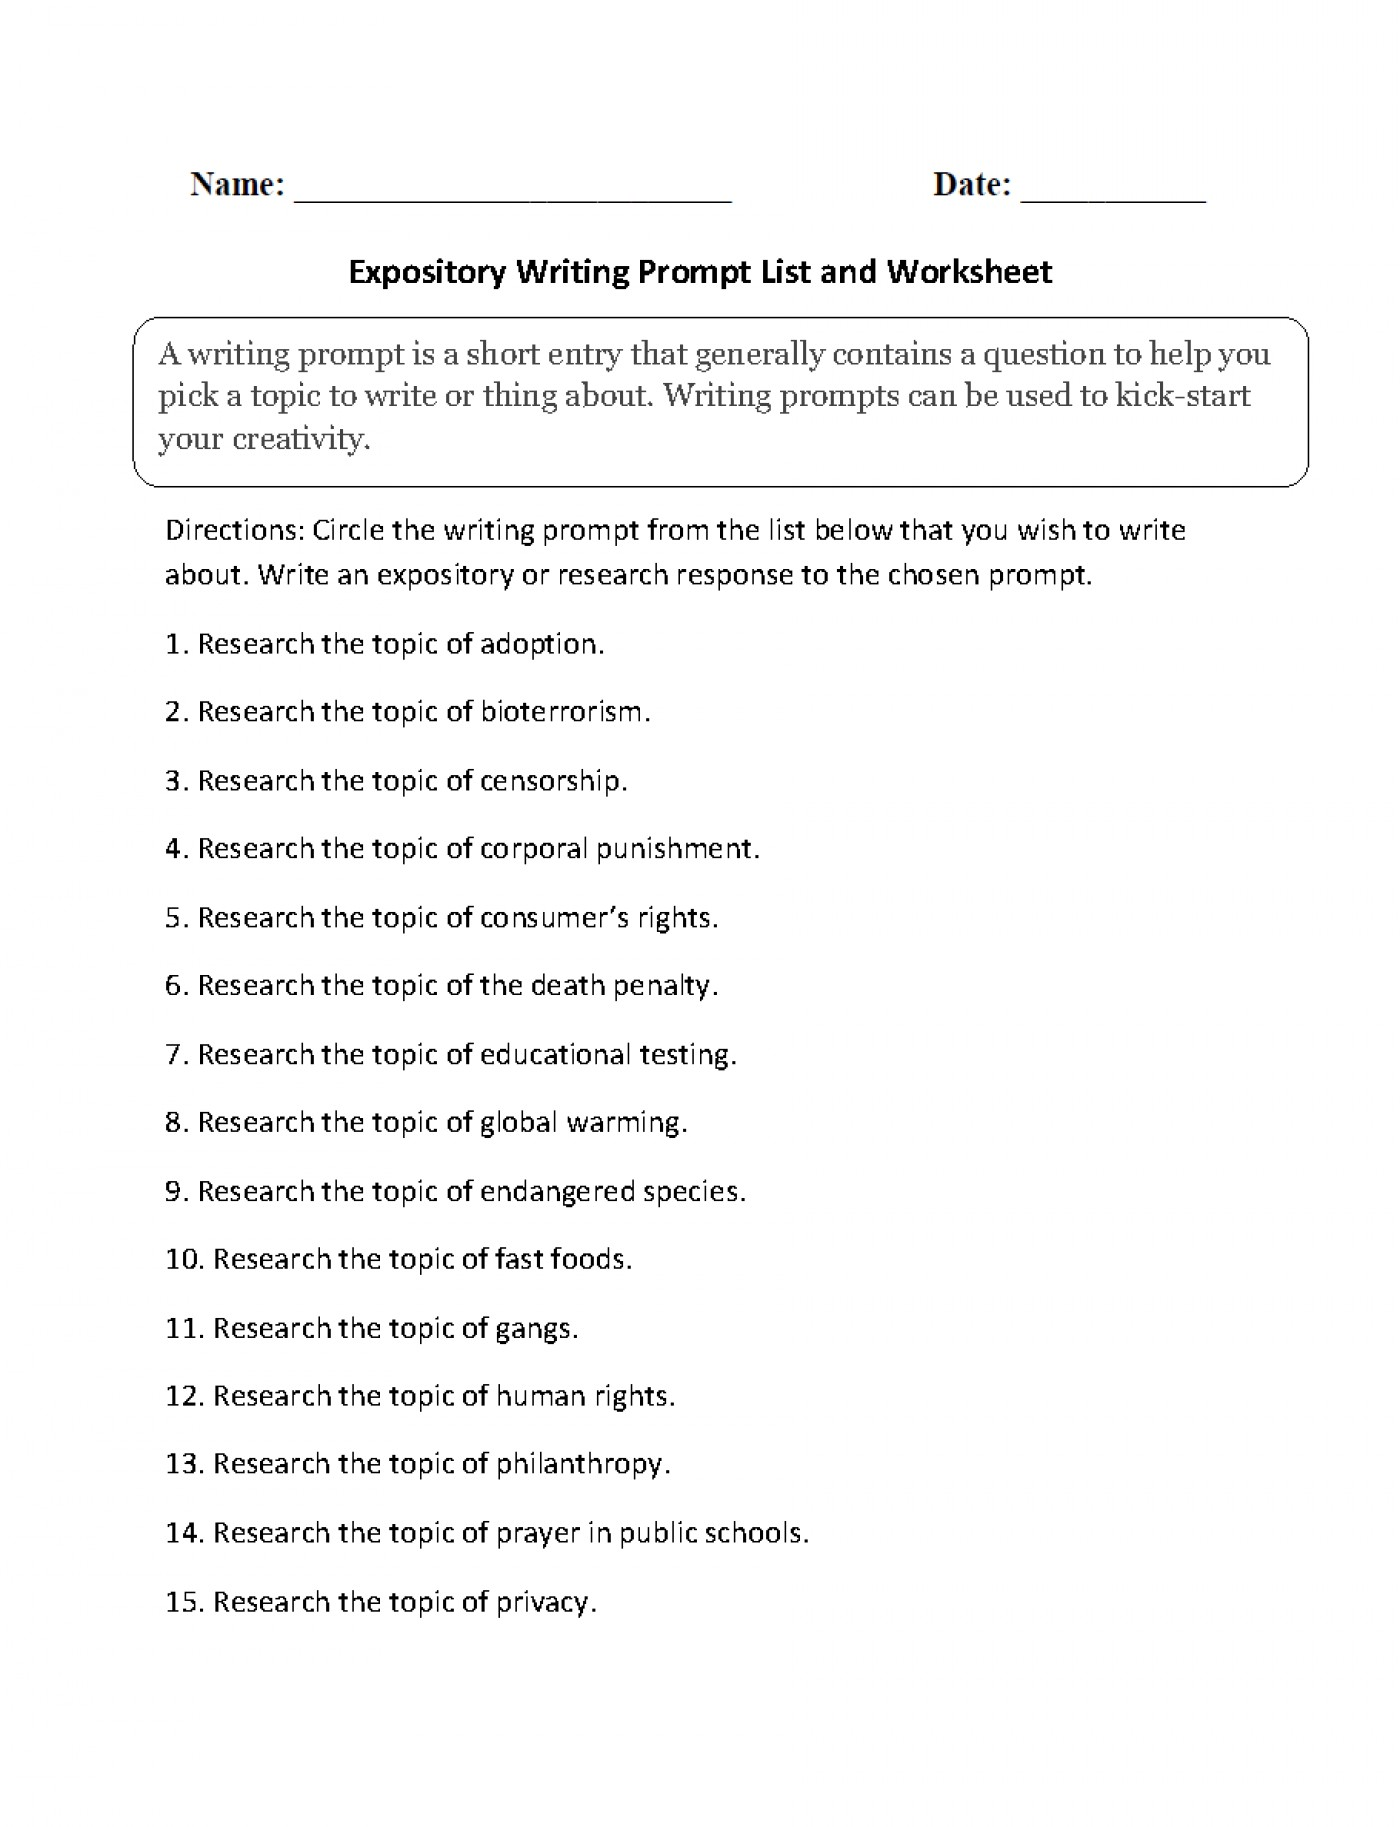 004 Expository Essay Topics Example Awesome Prompts 7th Grade Examples For College 4th 1400